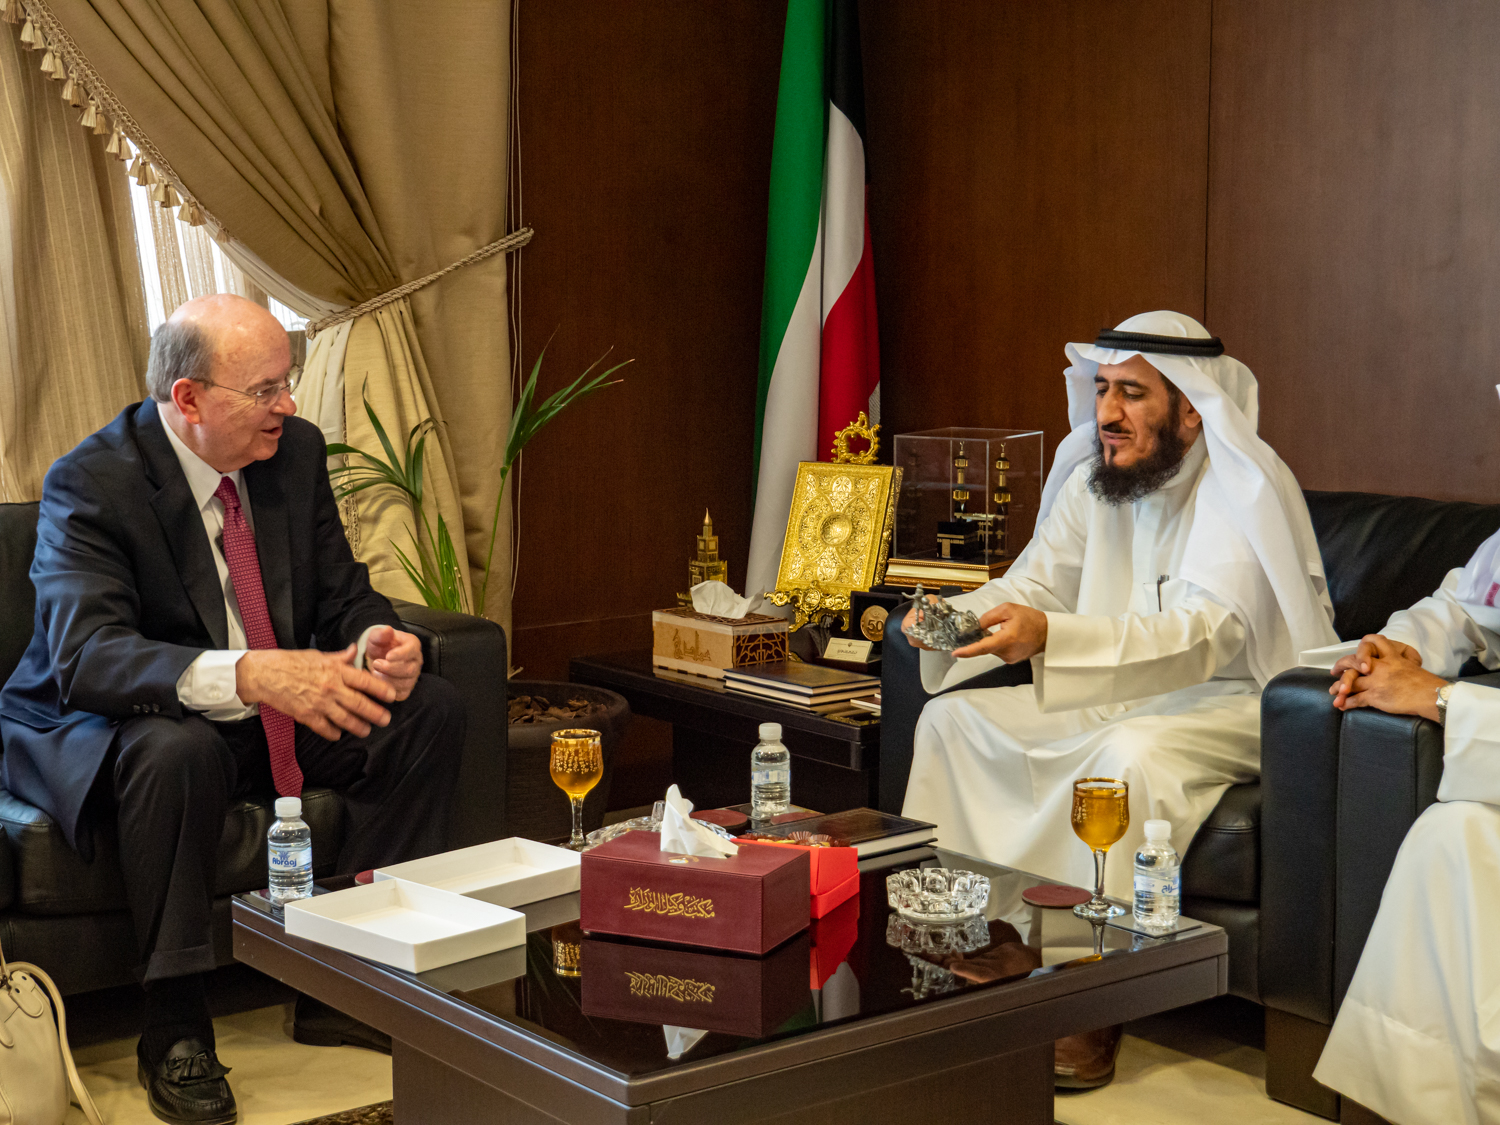 Elder Quentin L. Cook speaks to Mr. Fareed Emadi, secretary general of the Supreme Commission for the Promotion of Moderation in the Ministry of Awqaf, and others in Kuwait City on June 10, 2019.